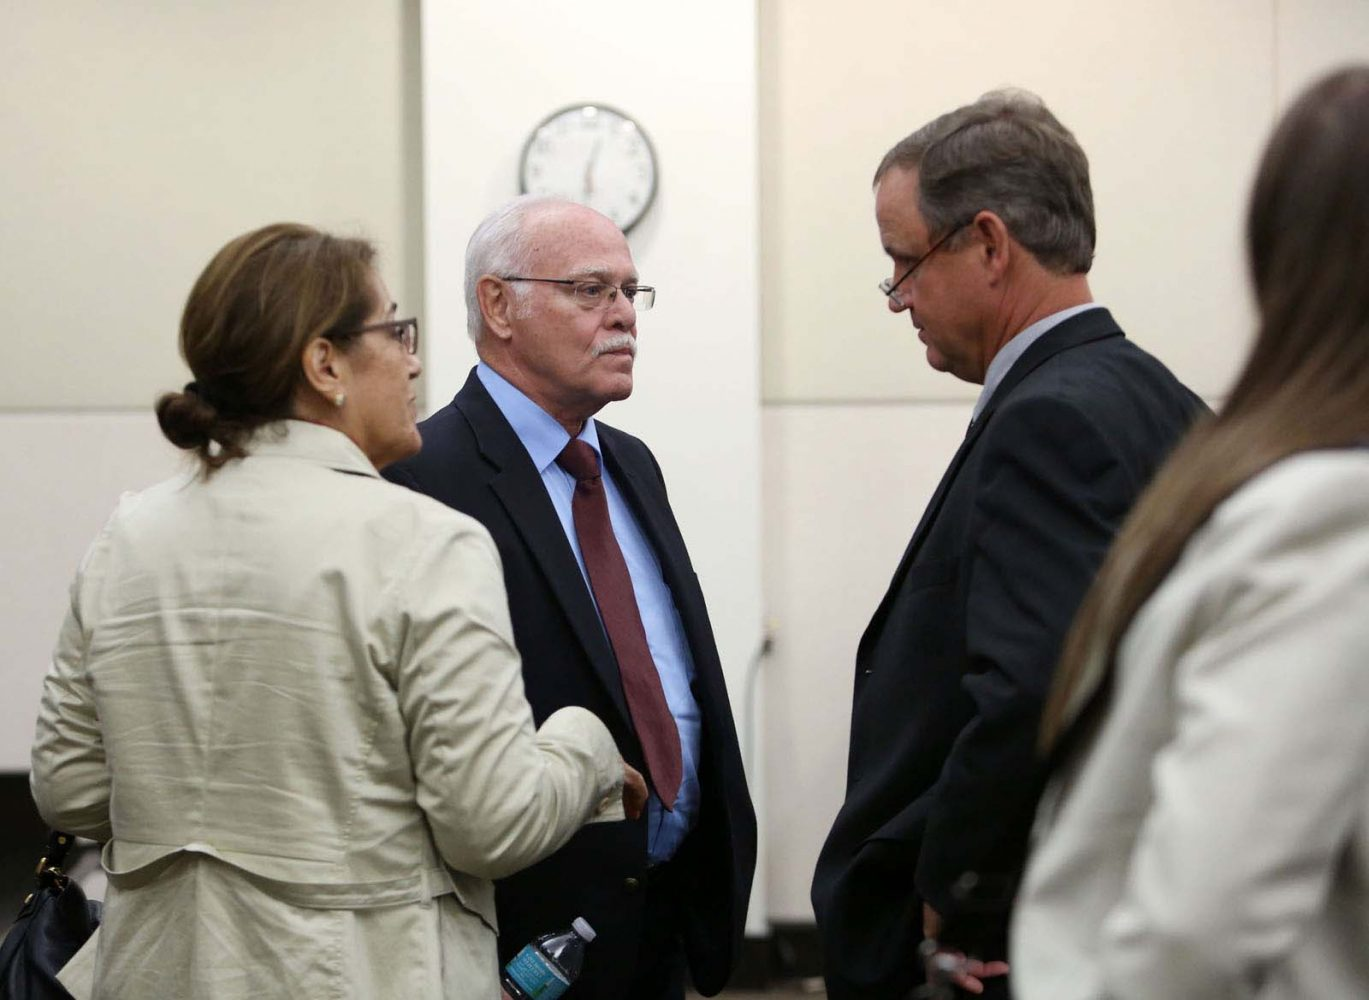 Pedro Bravo's parents Pedro Bravo and Azucena Duque talk with defense attorney Michael Ruppert following day seven of their son's murder trial in courtroom 1B of the Alachua County Criminal Justice Center Wednesday, August 13, 2014.  Bravo is accused of killing University of Florida student Christian Aguilar.  (Doug Finger/The Gainesville Sun/Pool)